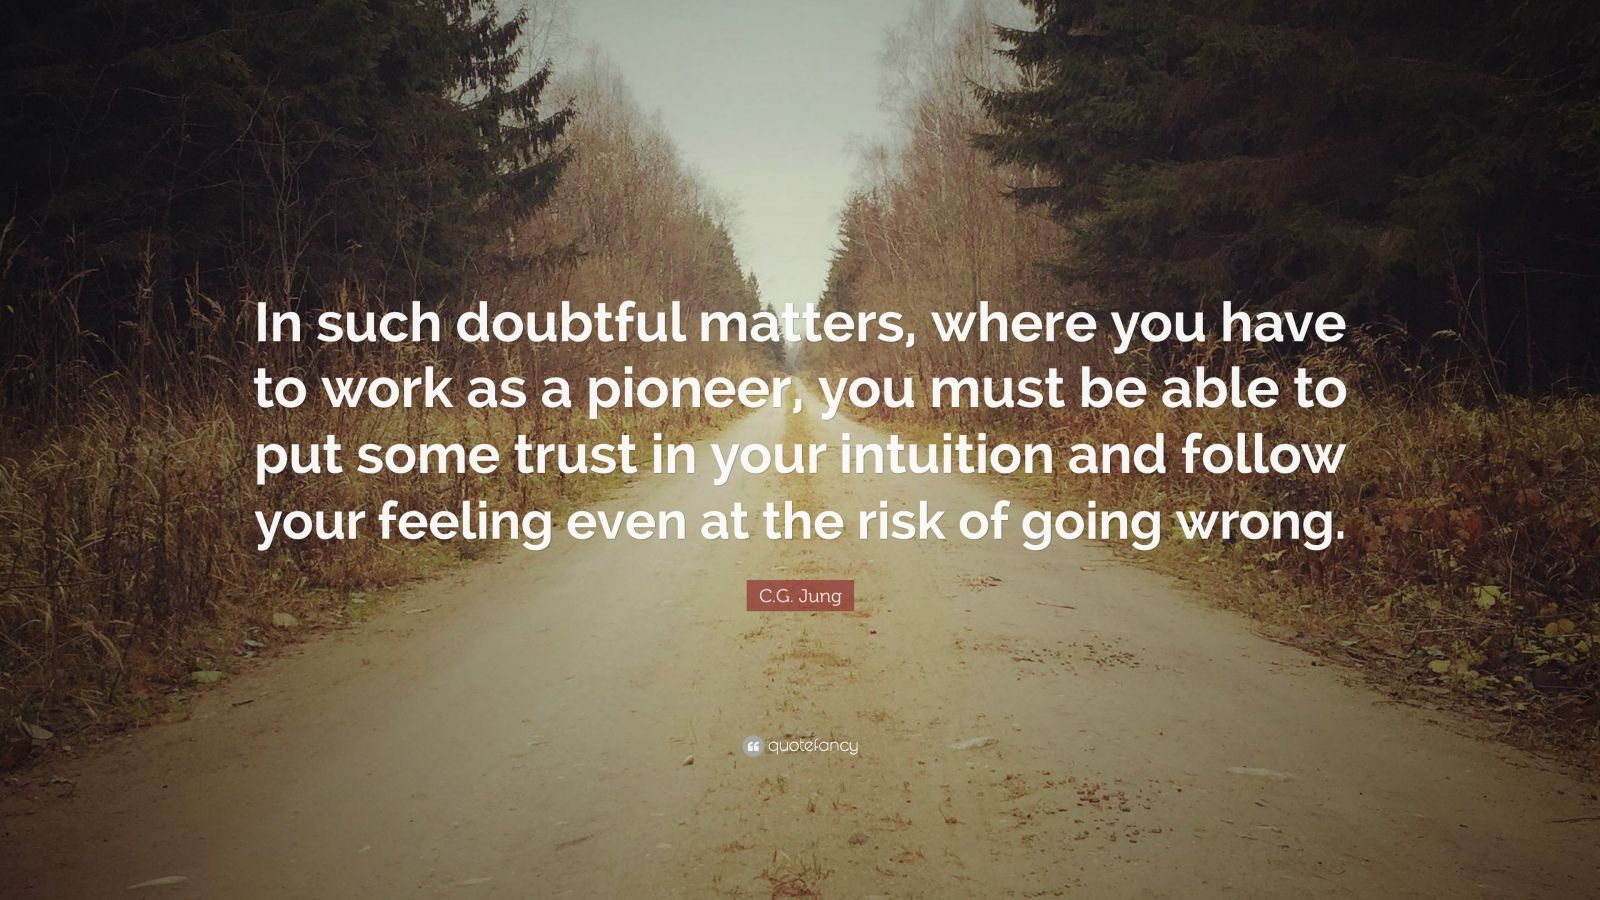 """C.G. Jung Quote: """"In such doubtful matters, where you have to work as a pioneer, you must be able to put some trust in your intuition and follow your feeling even at the risk of going wrong."""""""